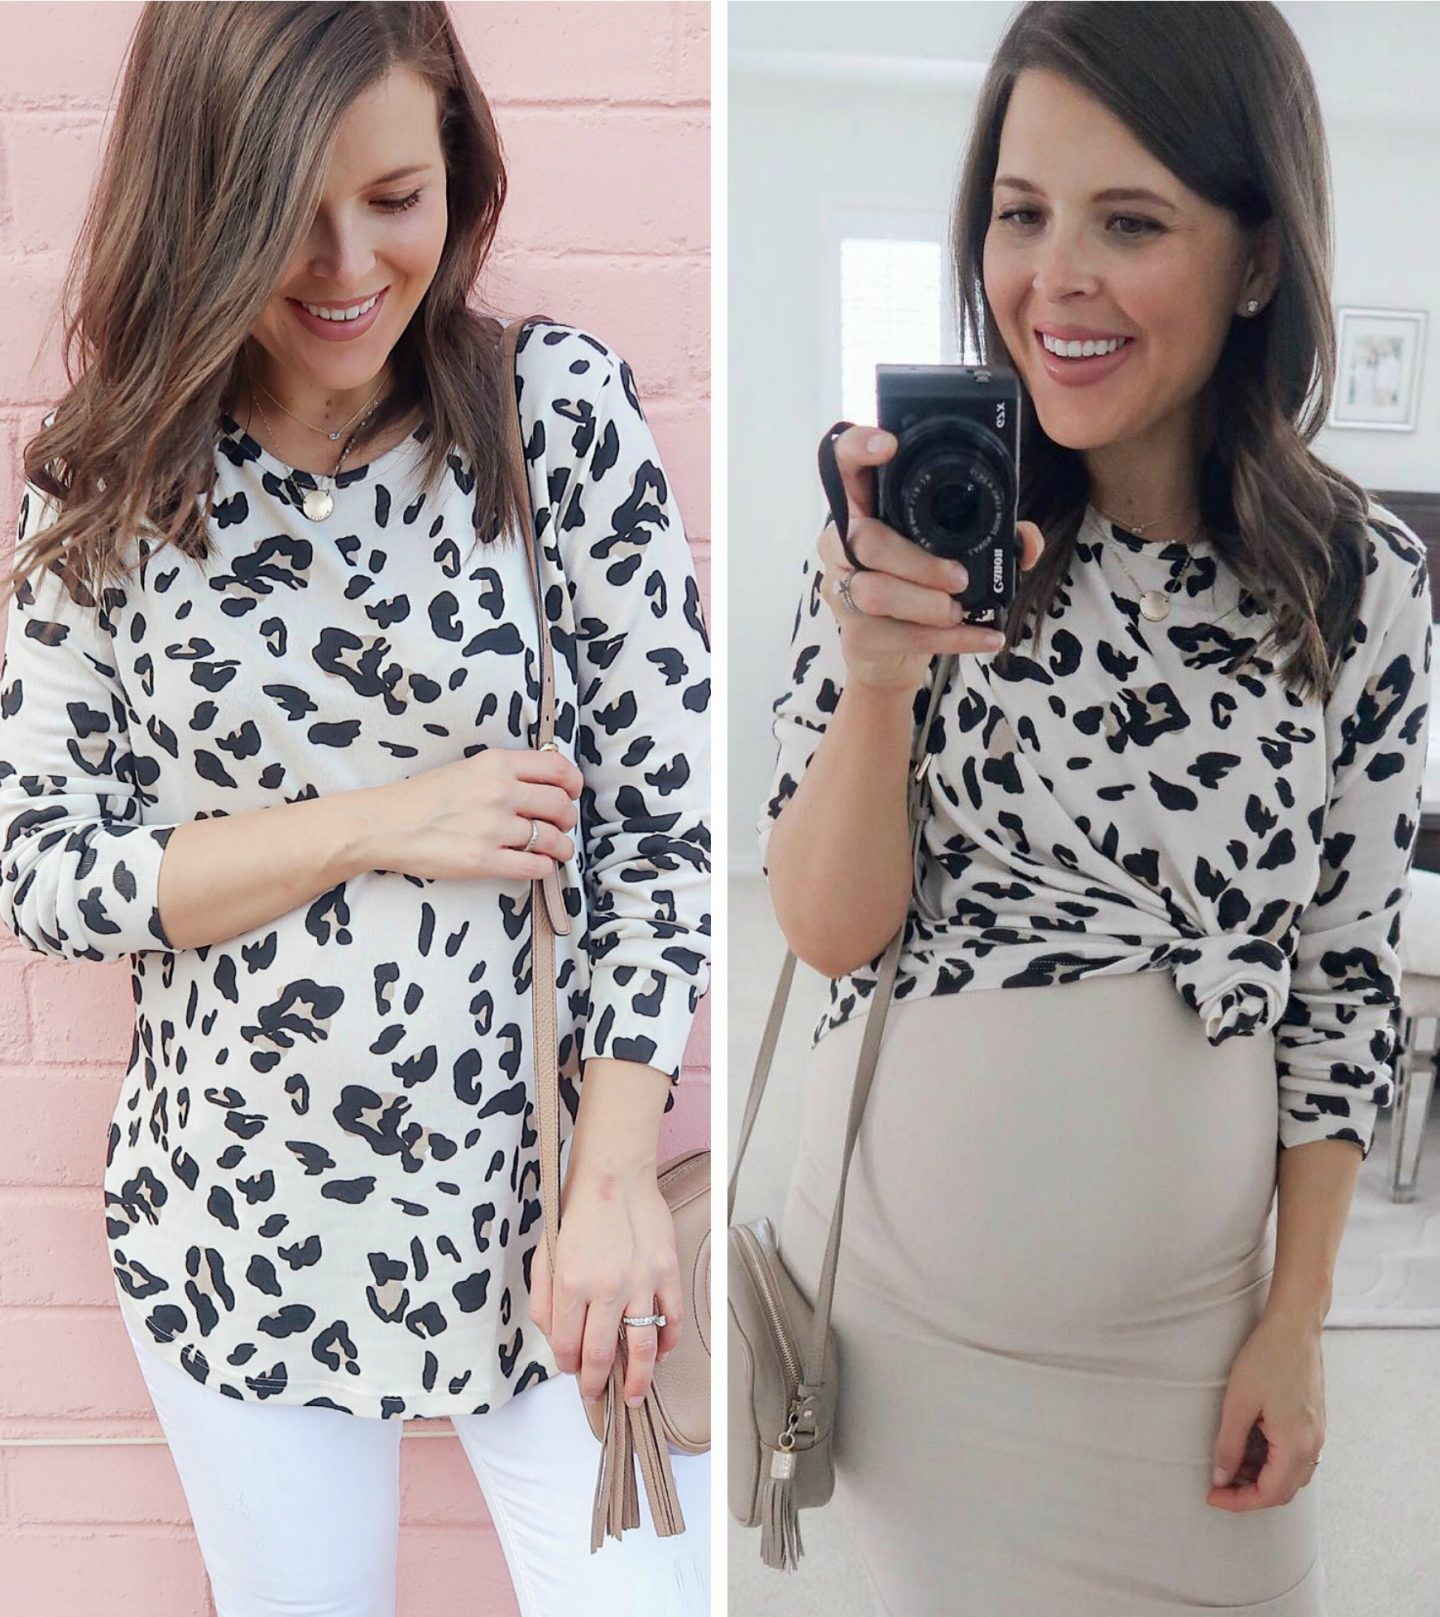 leopard sweater non-maternity pregnancy fashion amazon